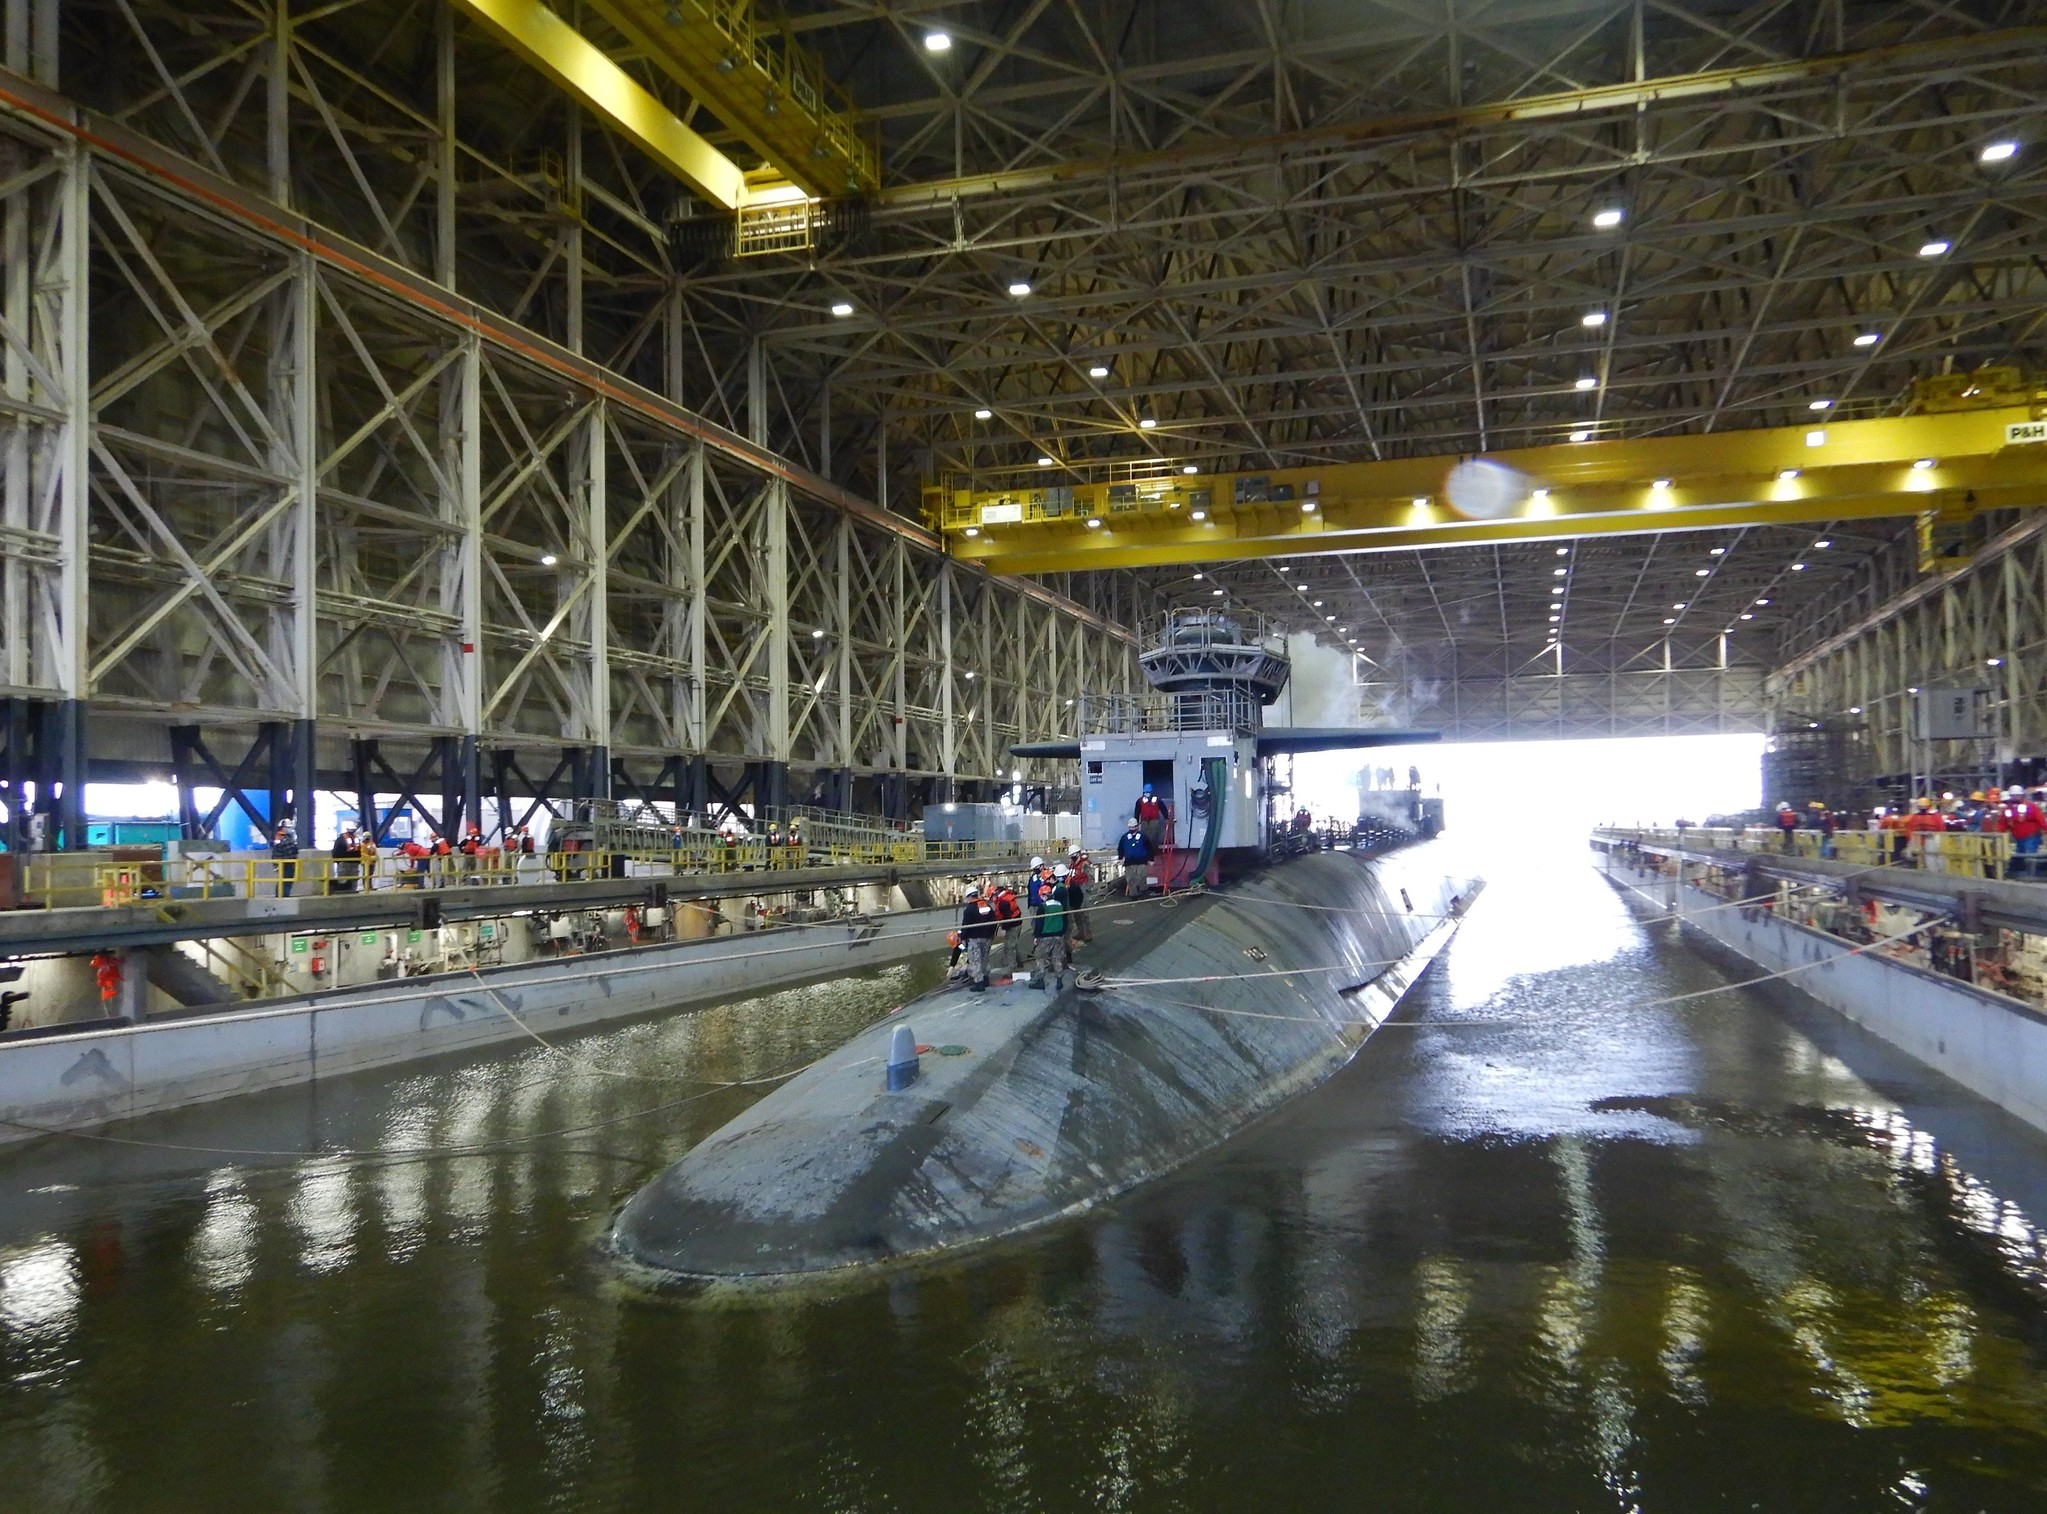 The Ohio-class ballistic-missile submarine USS Tennessee (SSBN 734) enters the Trident Refit Facility, Kings Bay, Ga., dry dock Feb. 1, 2021, for an extended refit period. Tennessee will be the last submarine in the dry dock before a $554 million dry dock refurbishment project begins later this summer. (Elaine Rilatt/Navy)